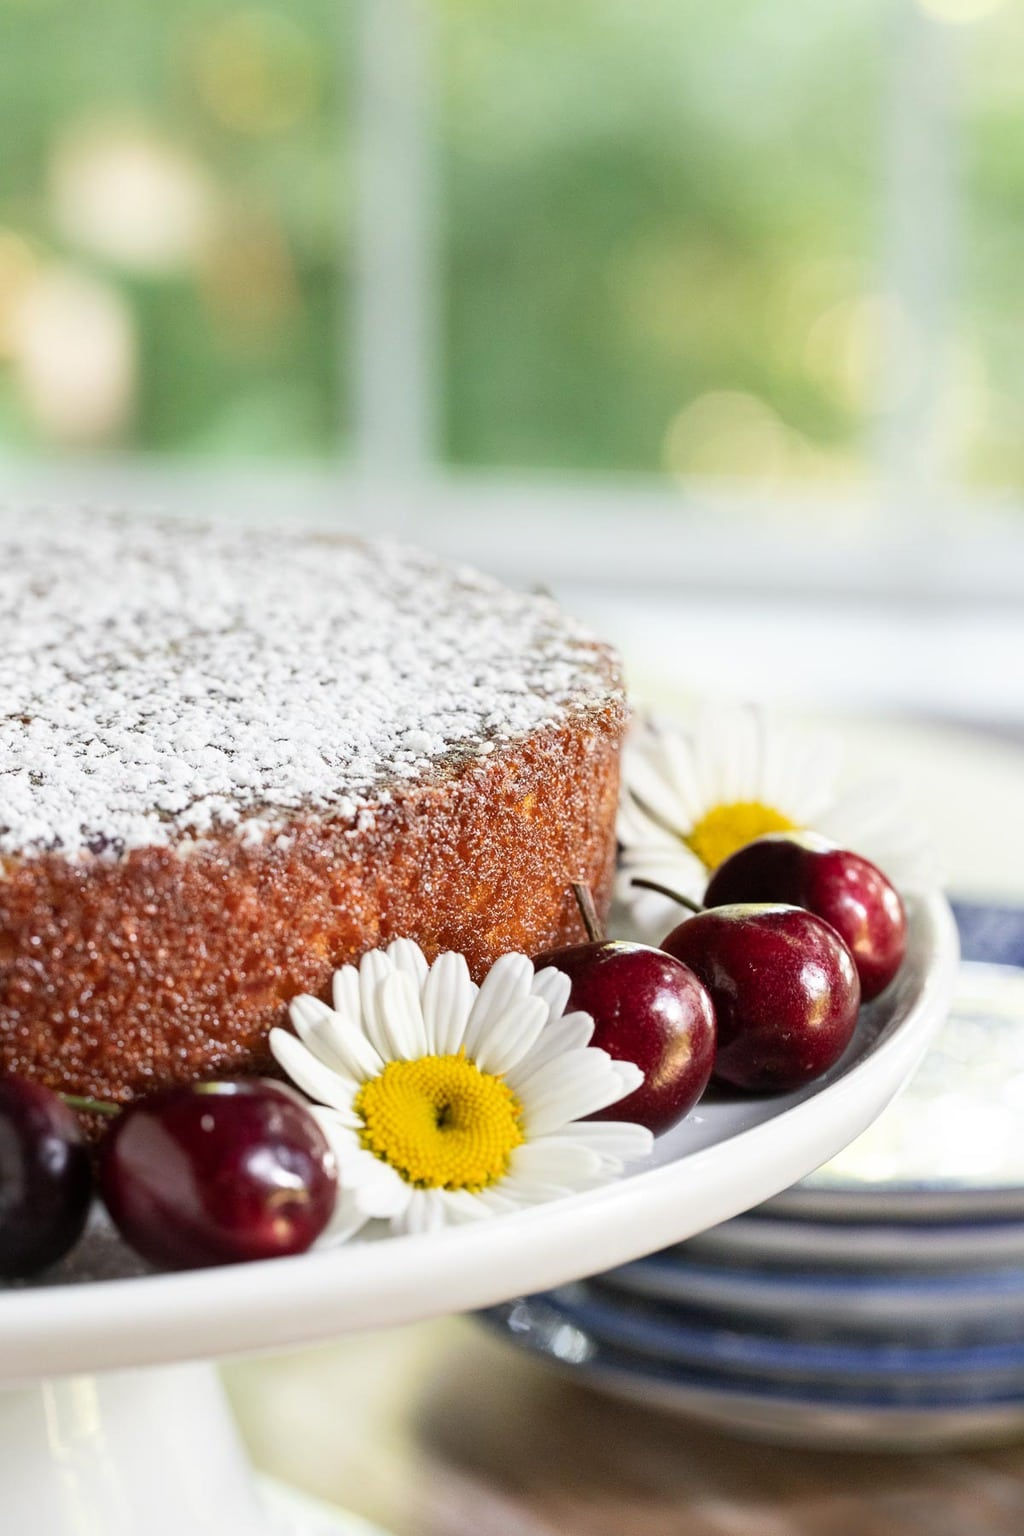 Vertical photo of a Ridiculously Fresh Sweet Cherry Almond Cake with an outdoor scene through a window in the background. The cake is decorated with fresh daisies and cherries.